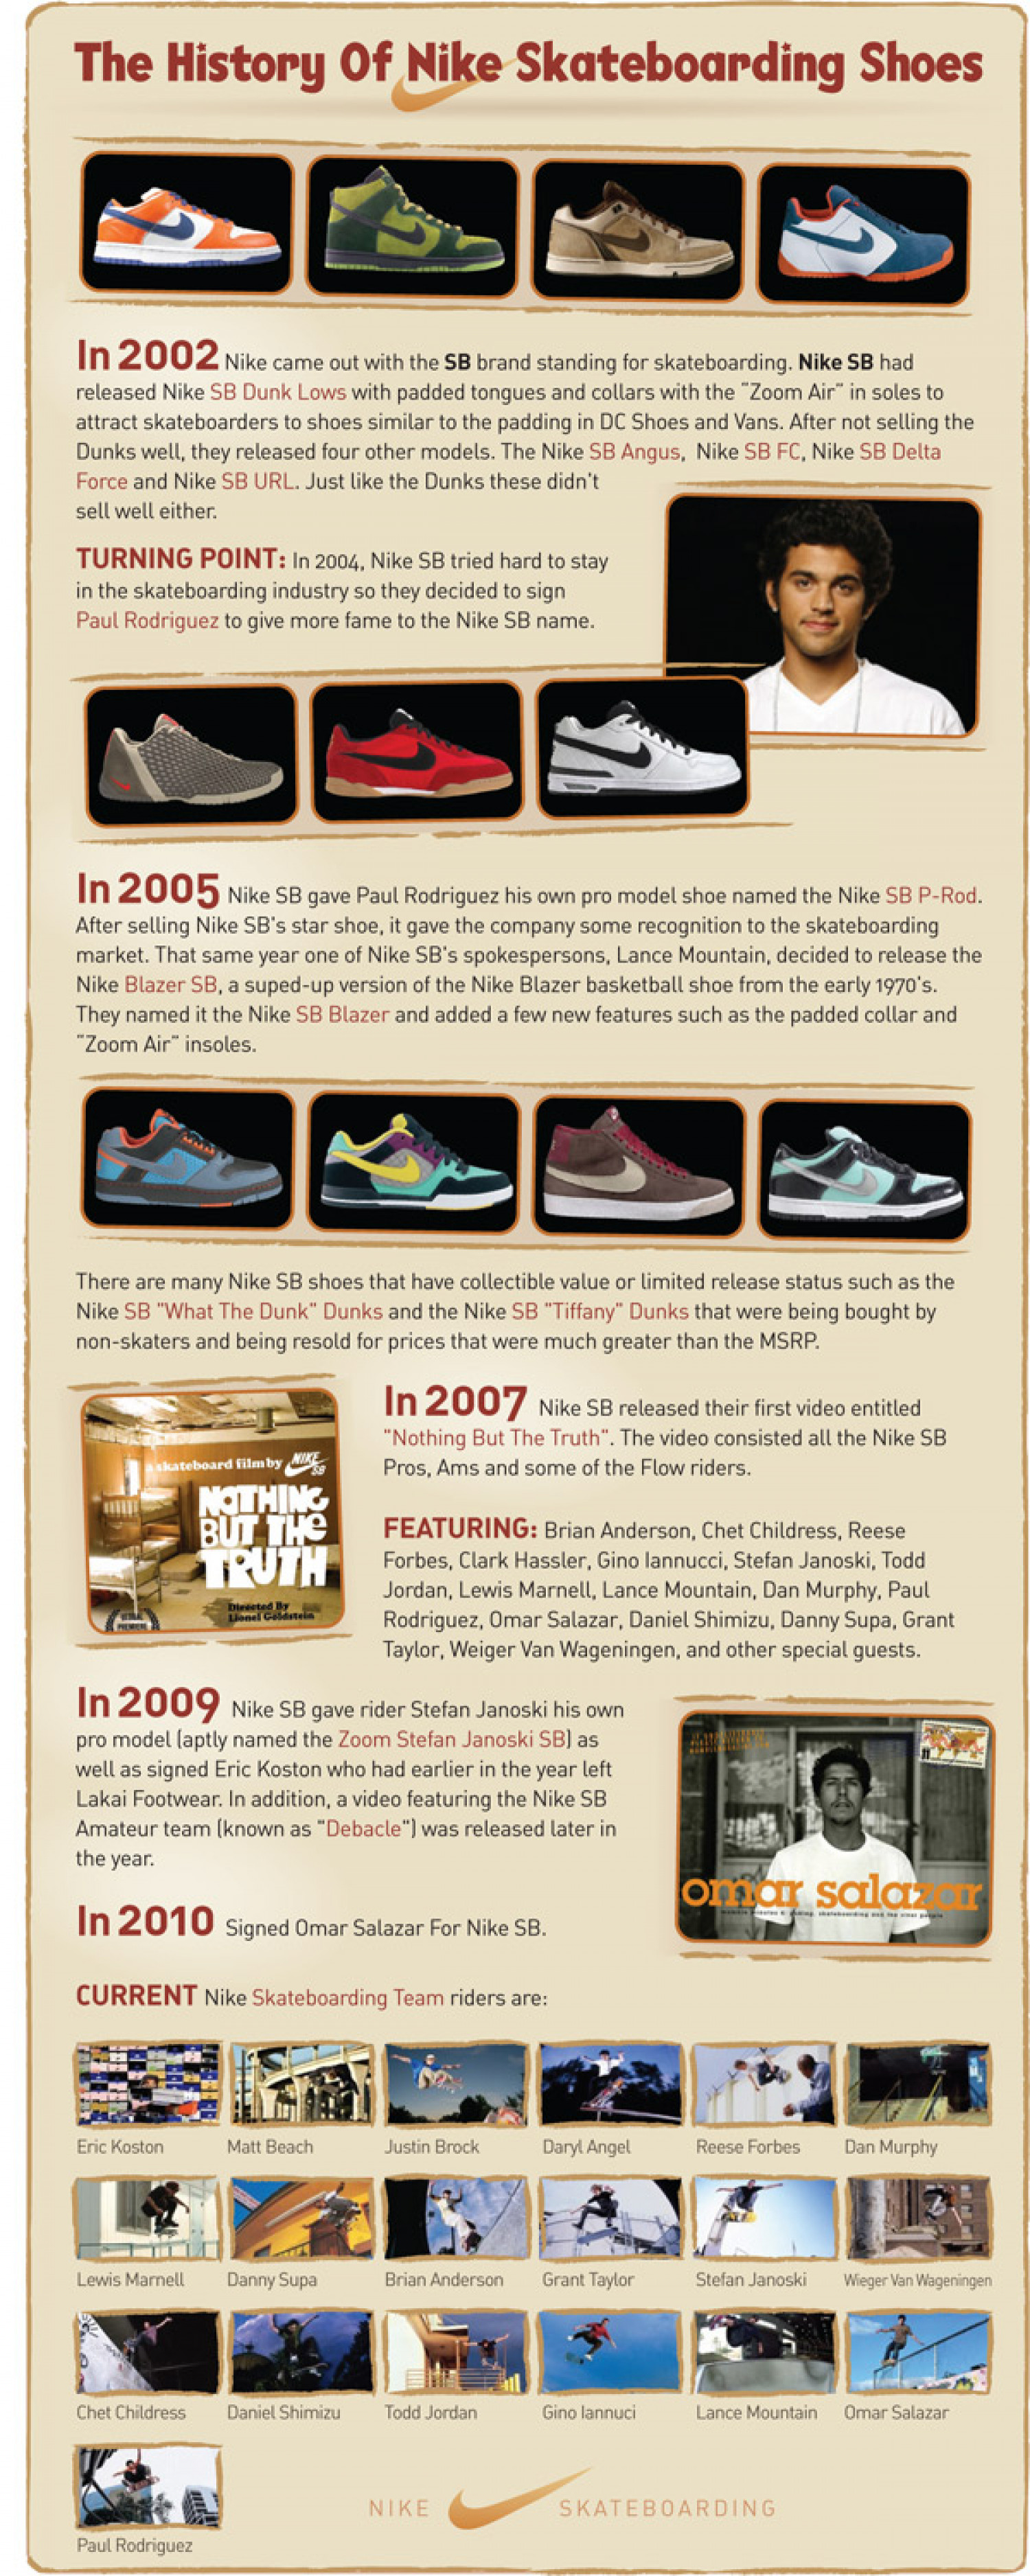 The History Of Nike Skateboarding Shoes Infographic